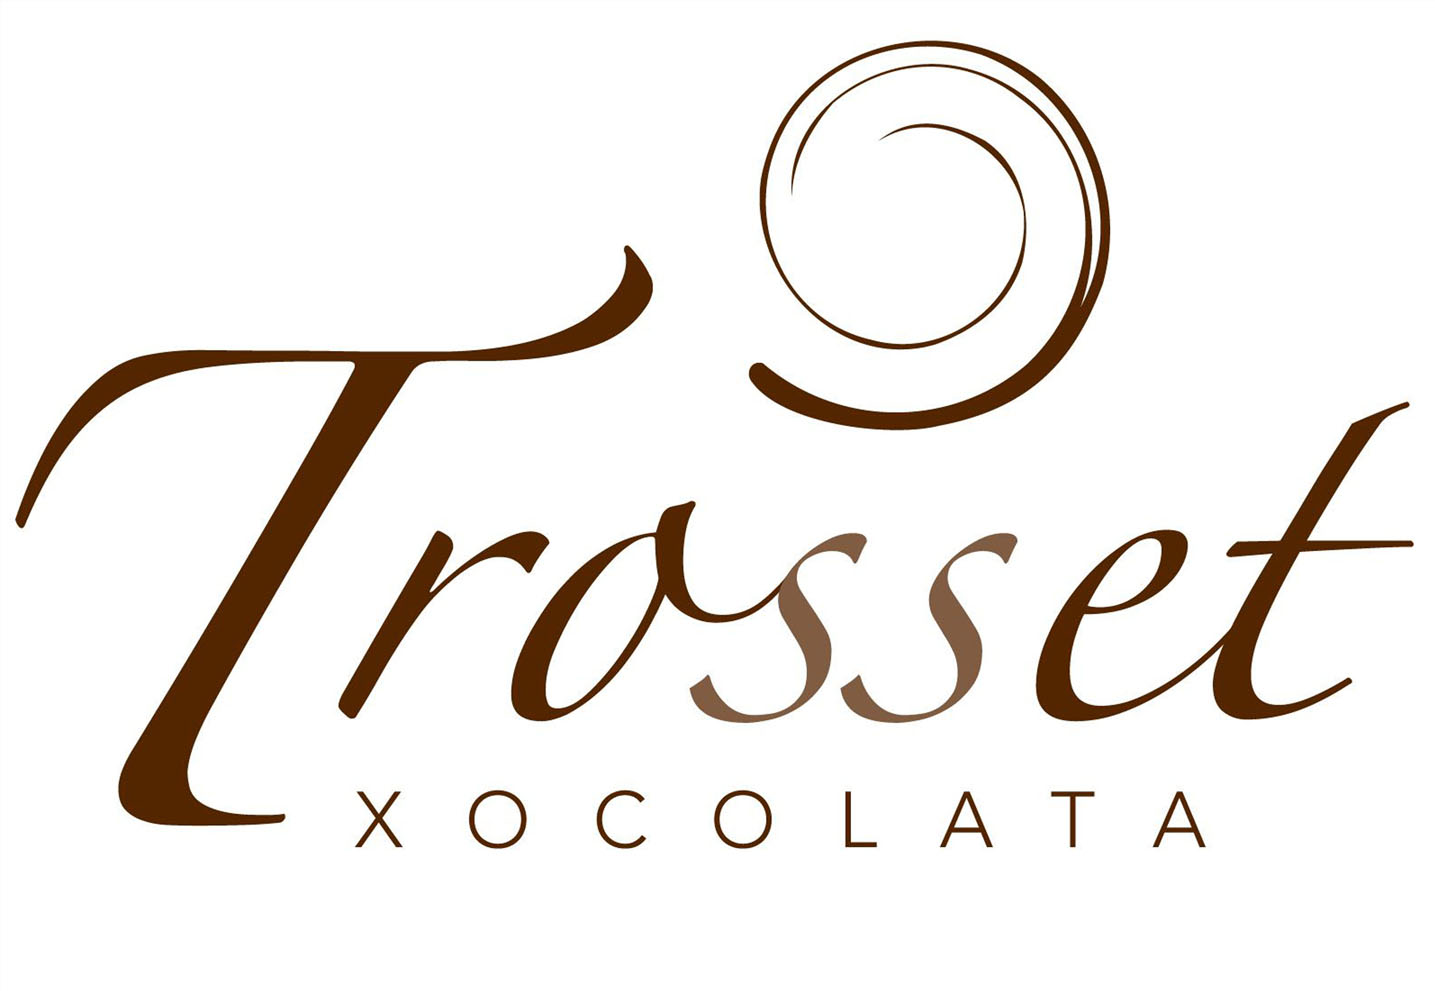 Chocolates Trosset